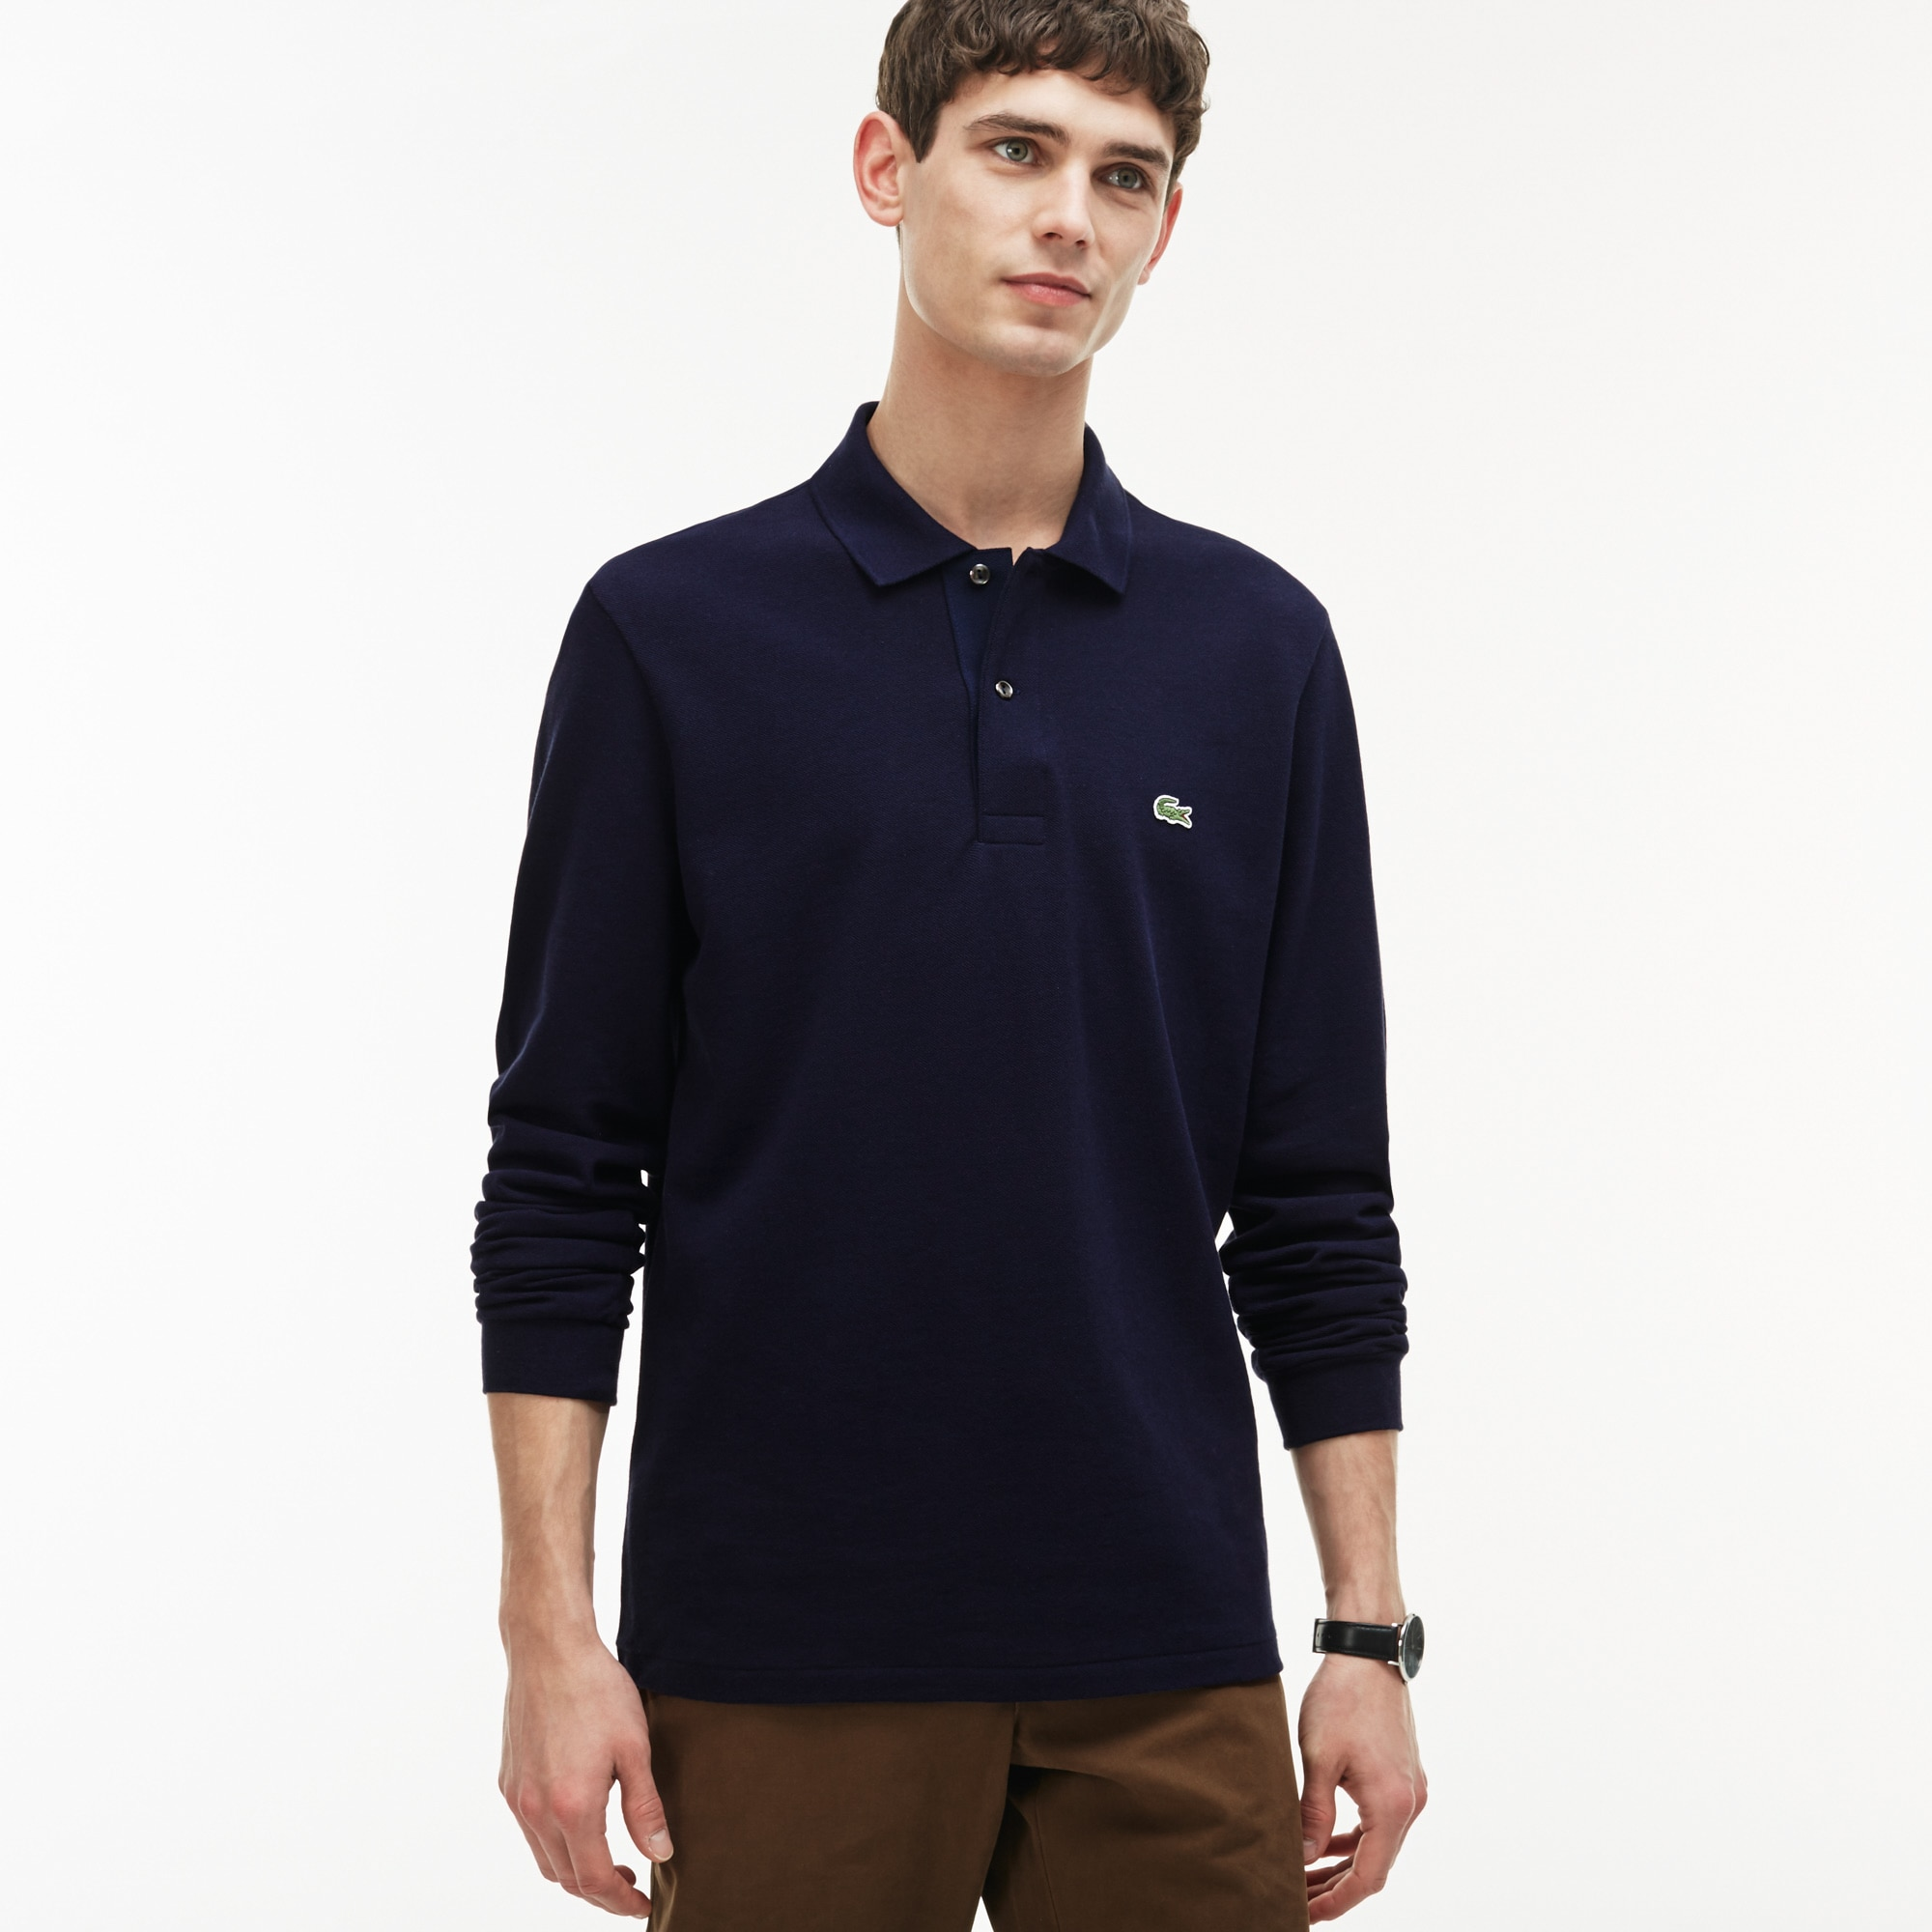 Men's Long Sleeve Chine Piqué Polo Shirt